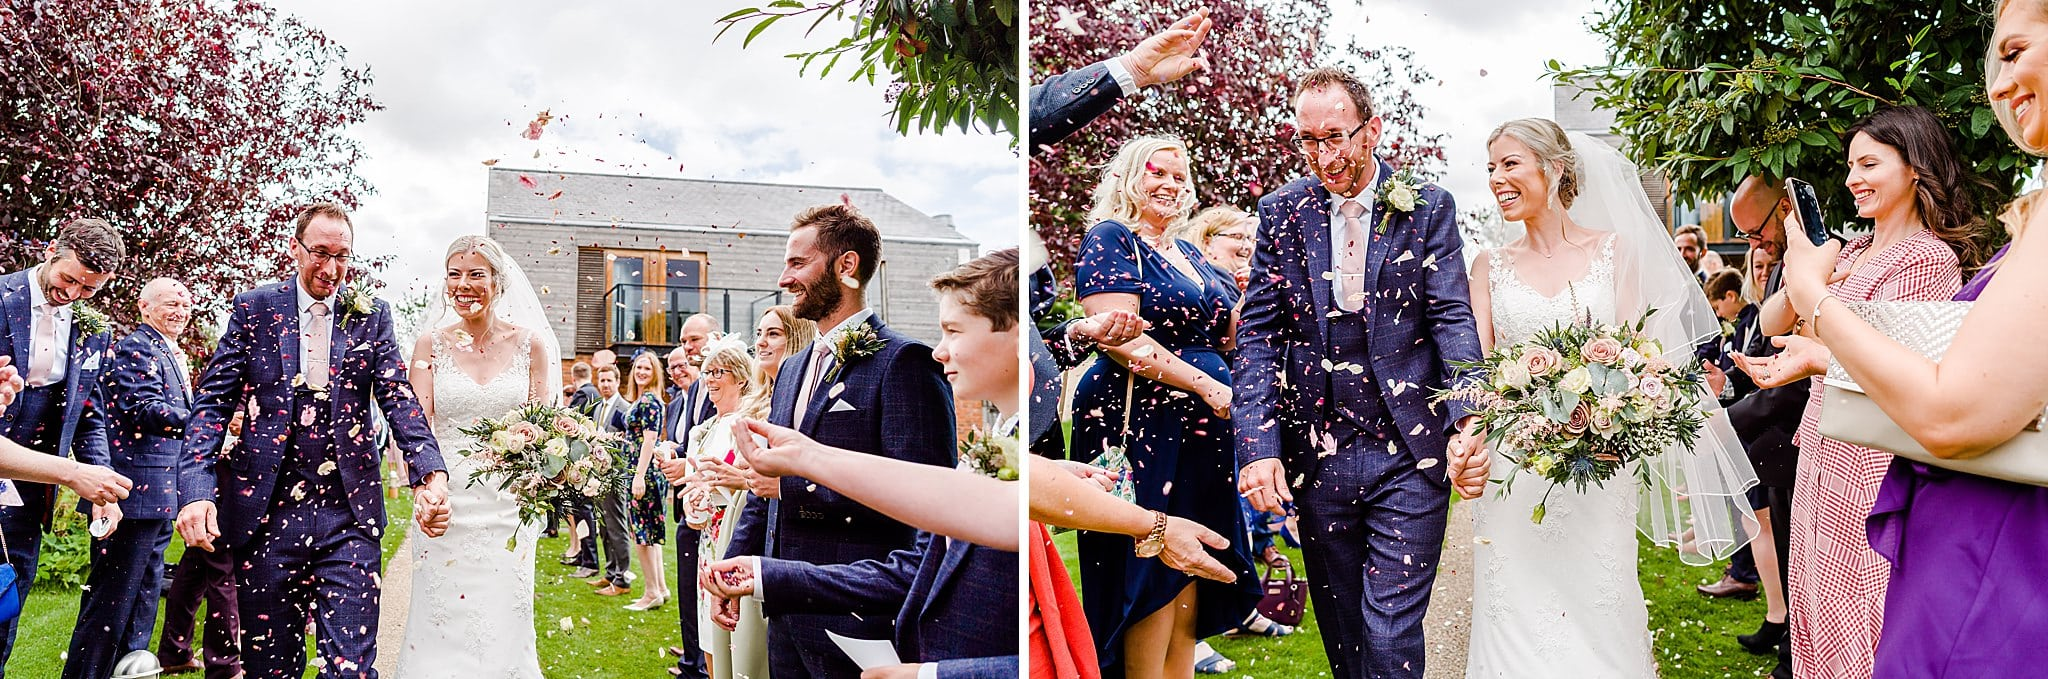 Bride and groom walk through confetti at Carriage Hall